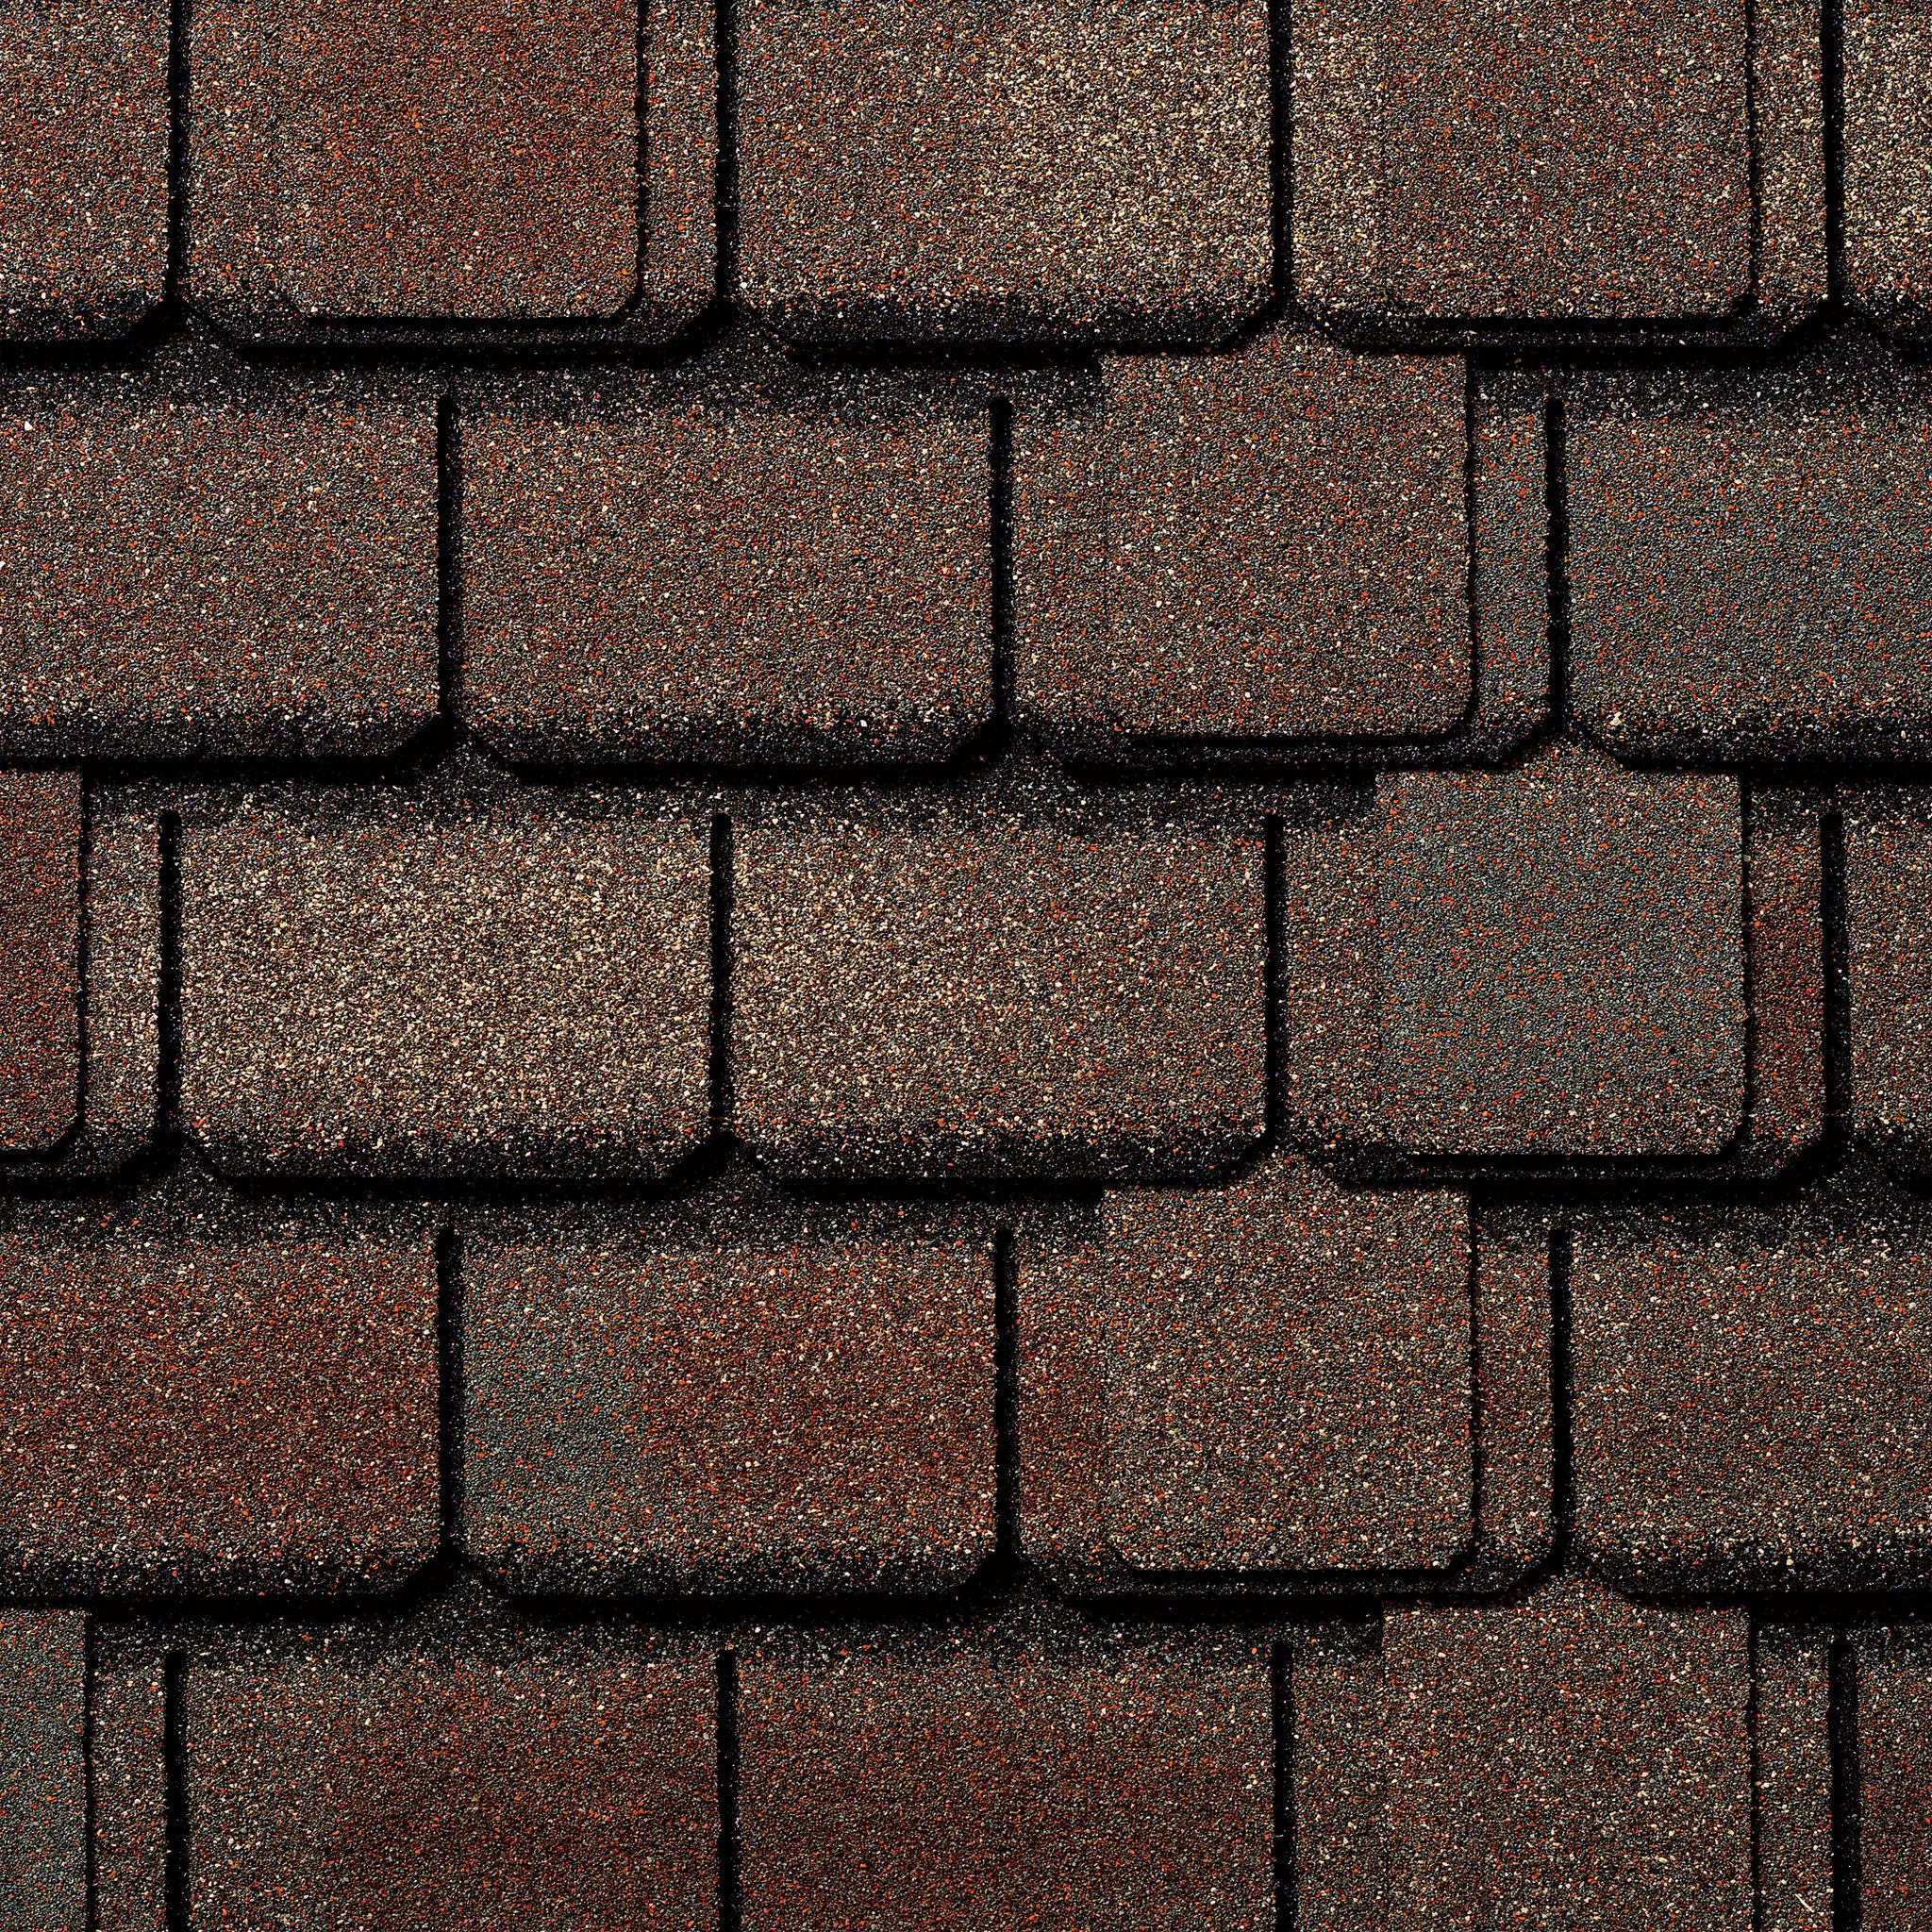 Close-up photo of GAF's Camelot San Gabriel shingle swatch